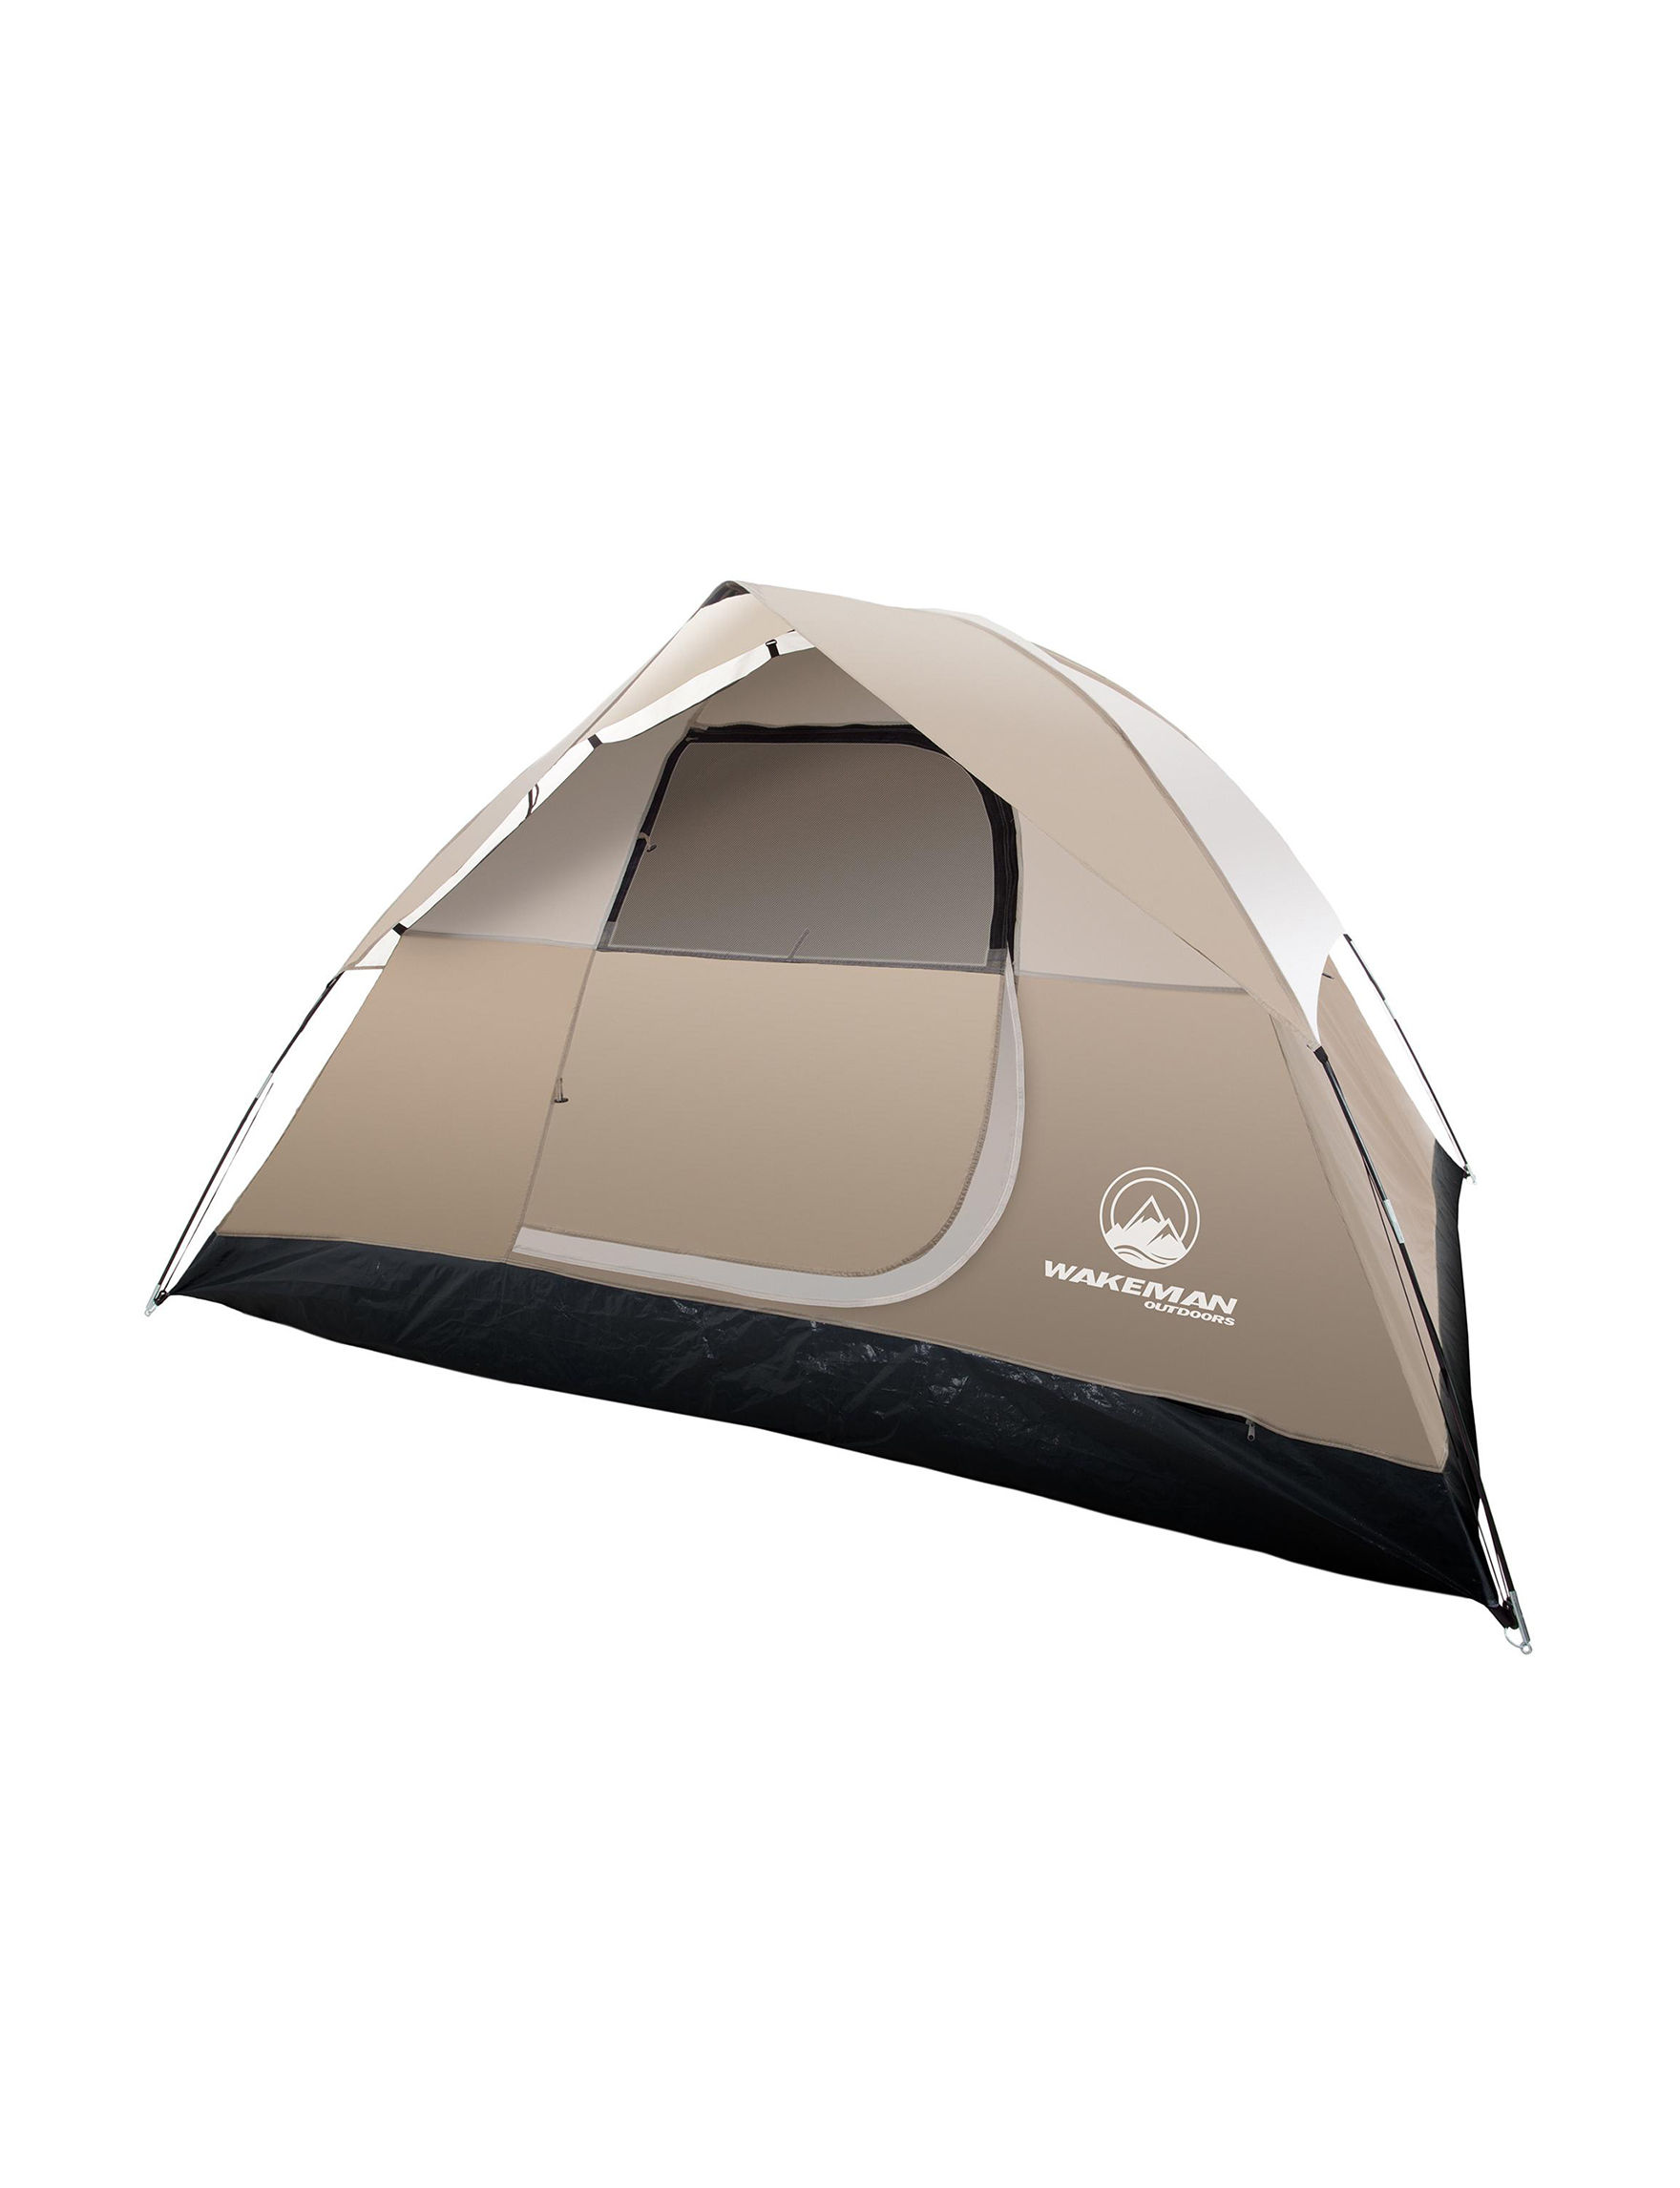 Wakeman Tan Tents & Canopies Camping & Outdoor Gear